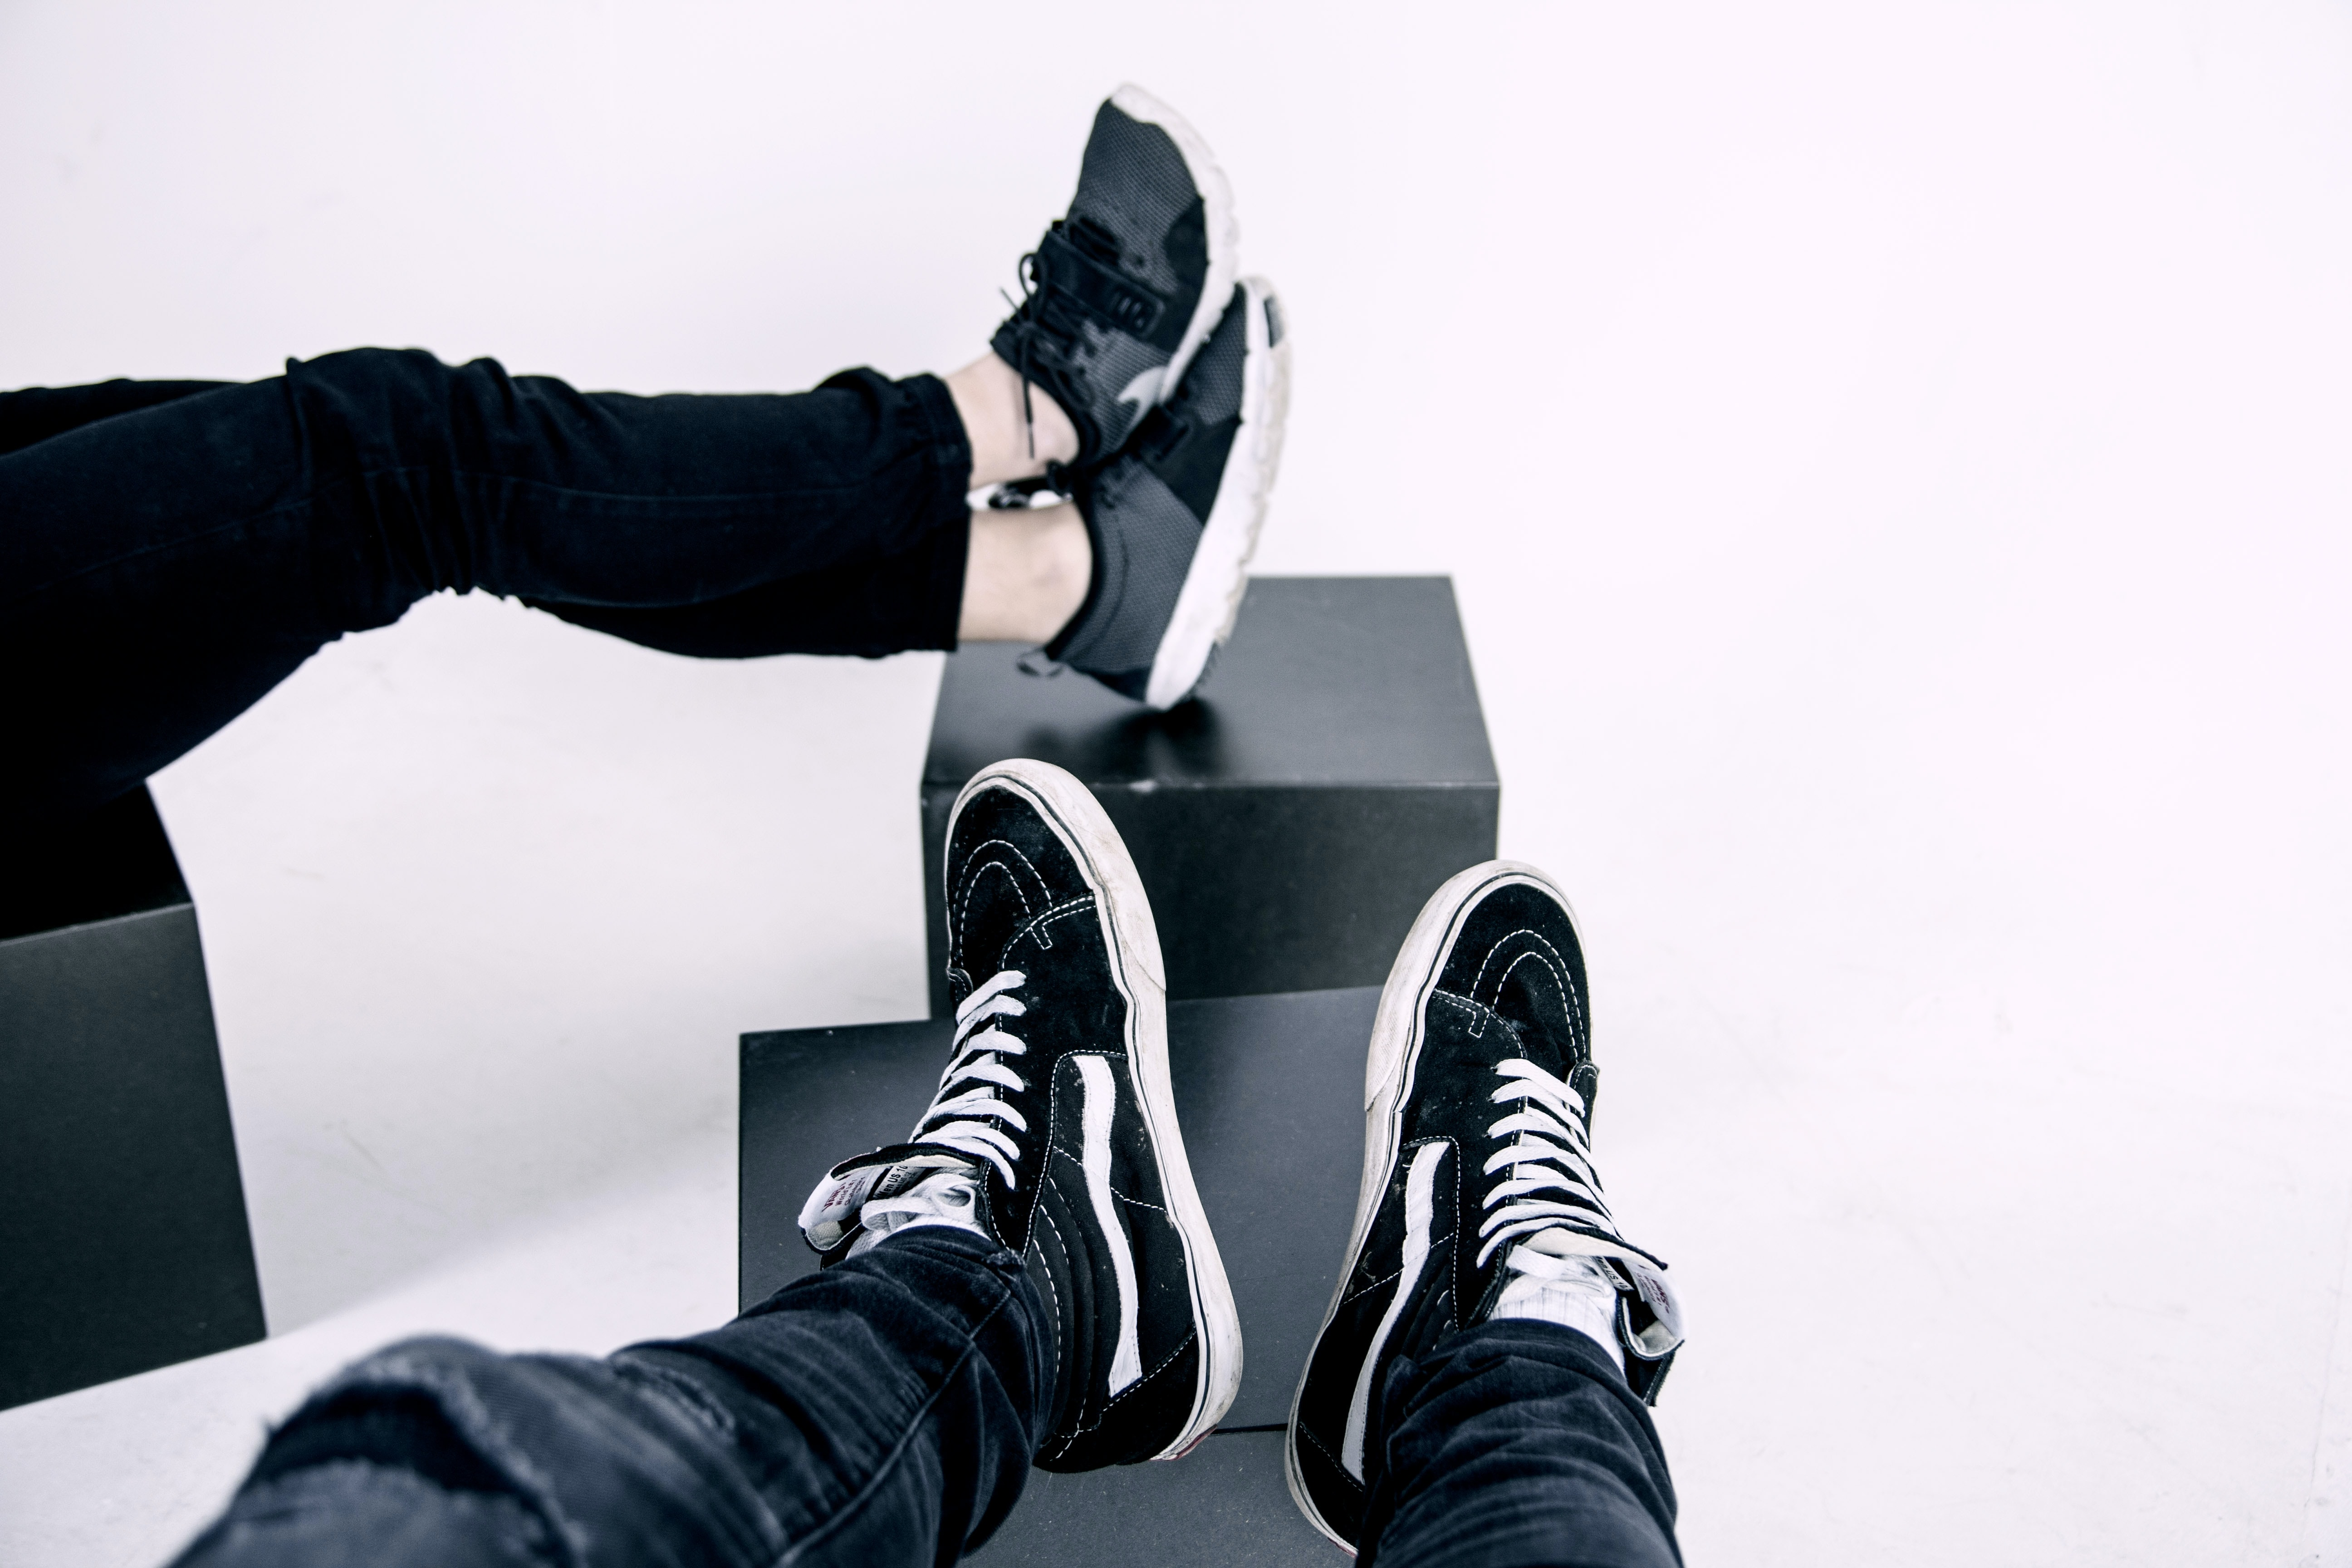 pair of white-and-black Vans high-top sneakers